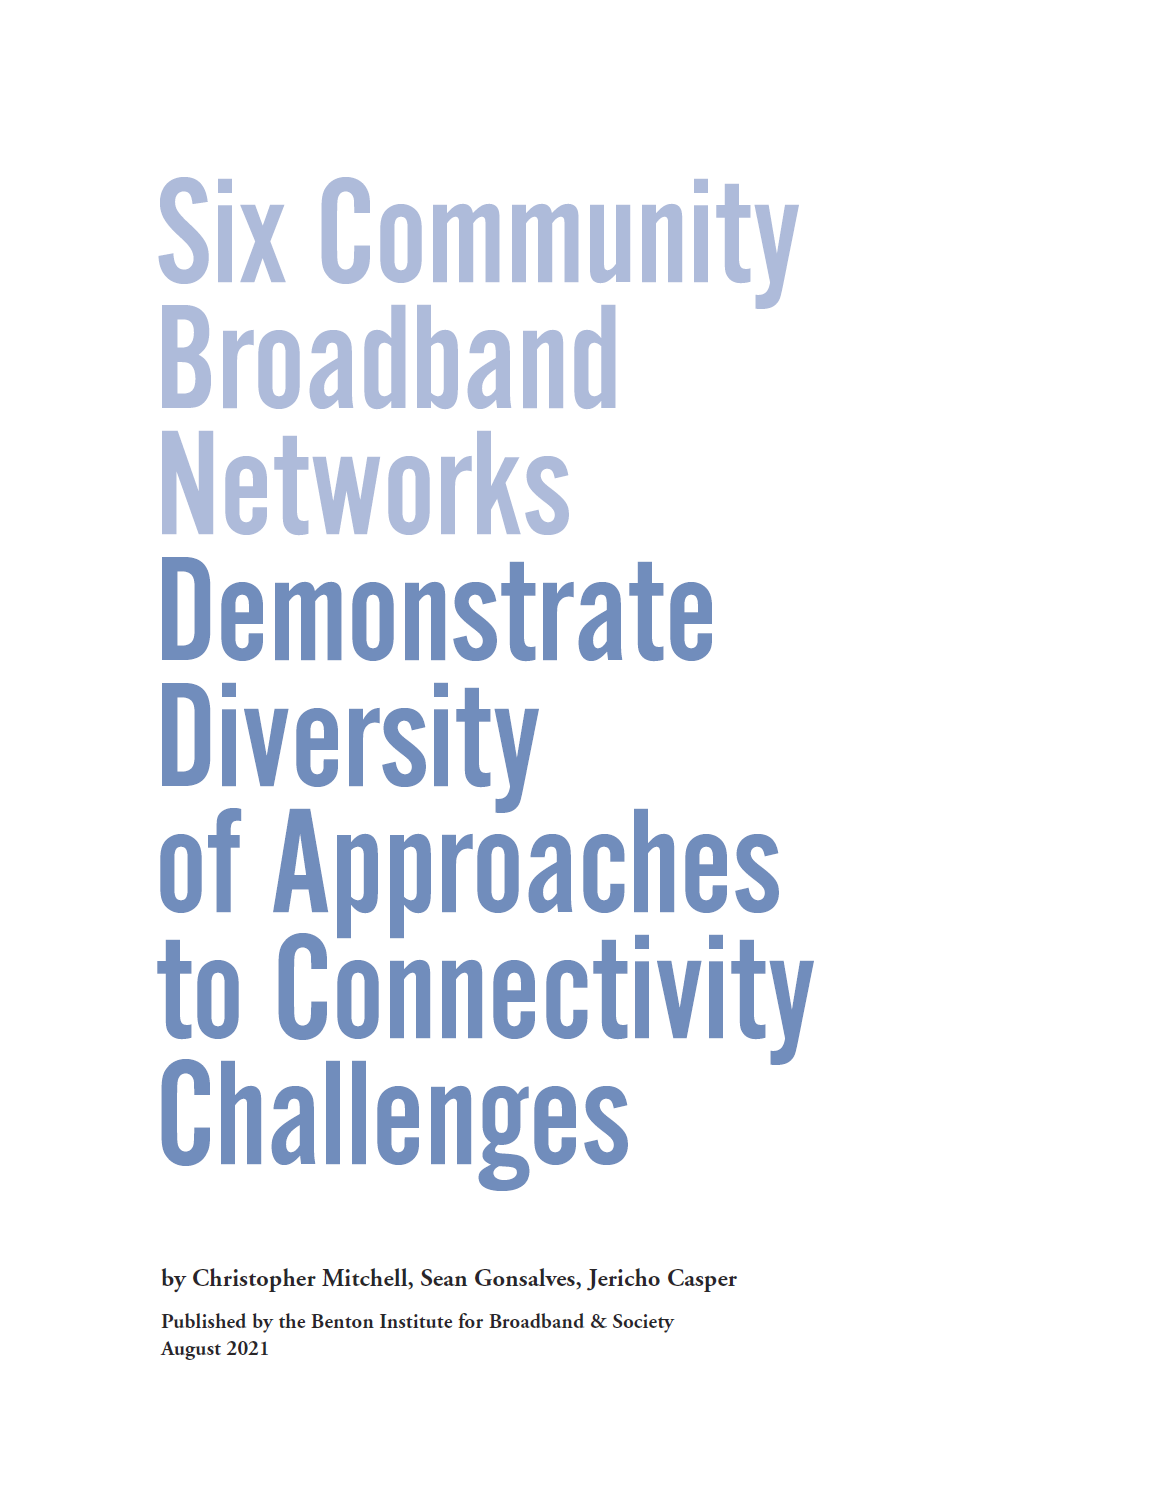 Six Community Broadband Networks Demonstrate Diversity of Approaches to Connectivity Challenges